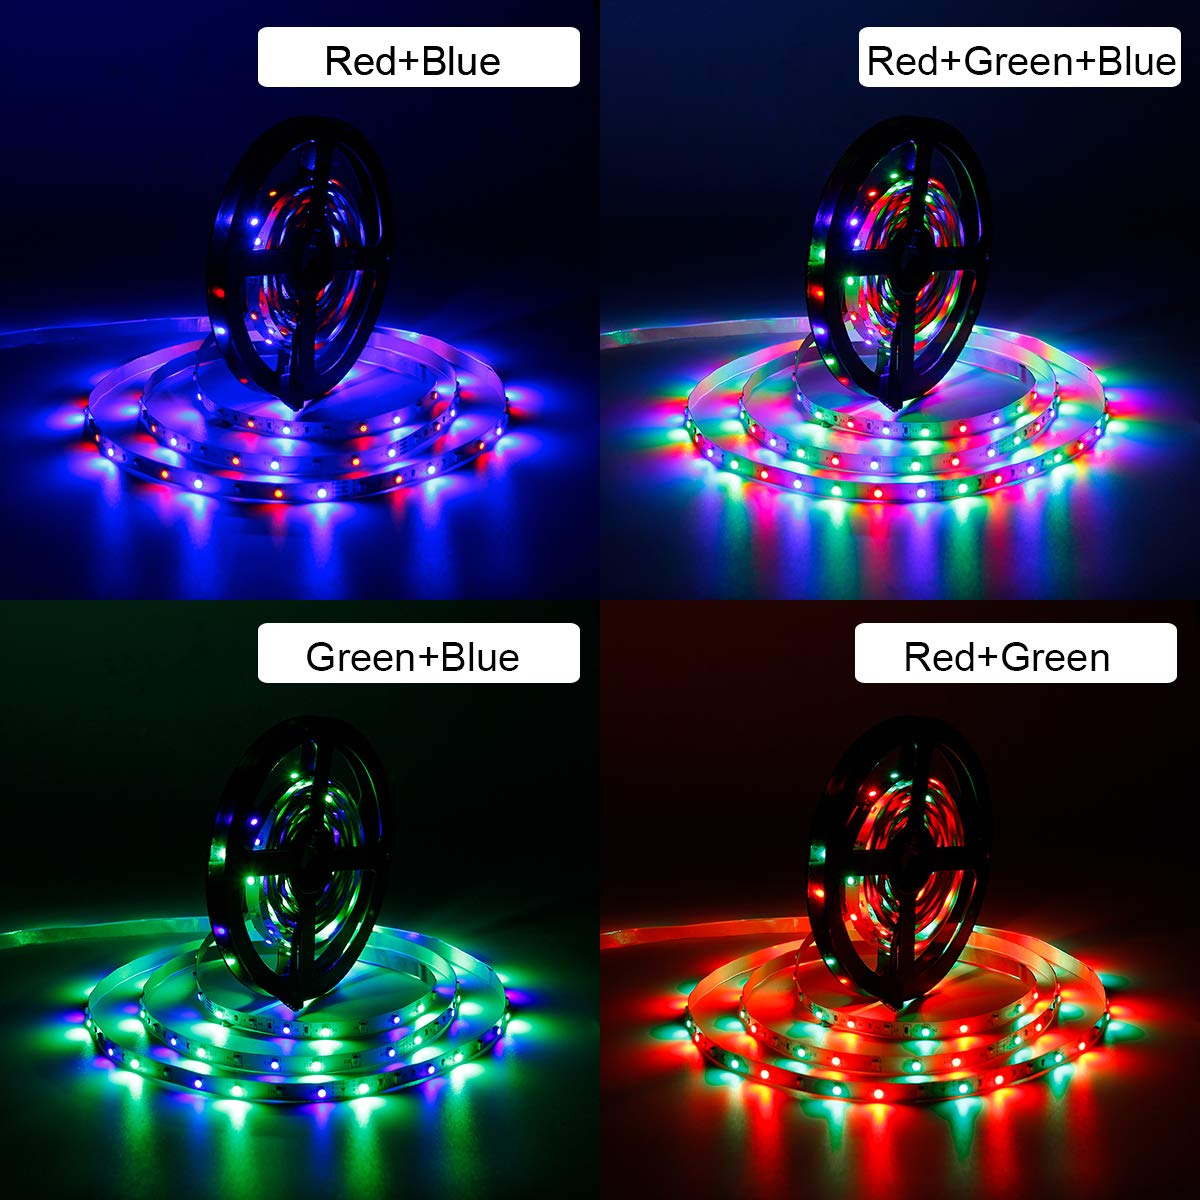 SUPERNIGHT 5M/16.4 Ft SMD 3528 RGB 300 LED Color Changing Kit with Flexible Strip Light+24 Key IR Remote Control+ Power Supply by SUPERNIGHT (Image #3)